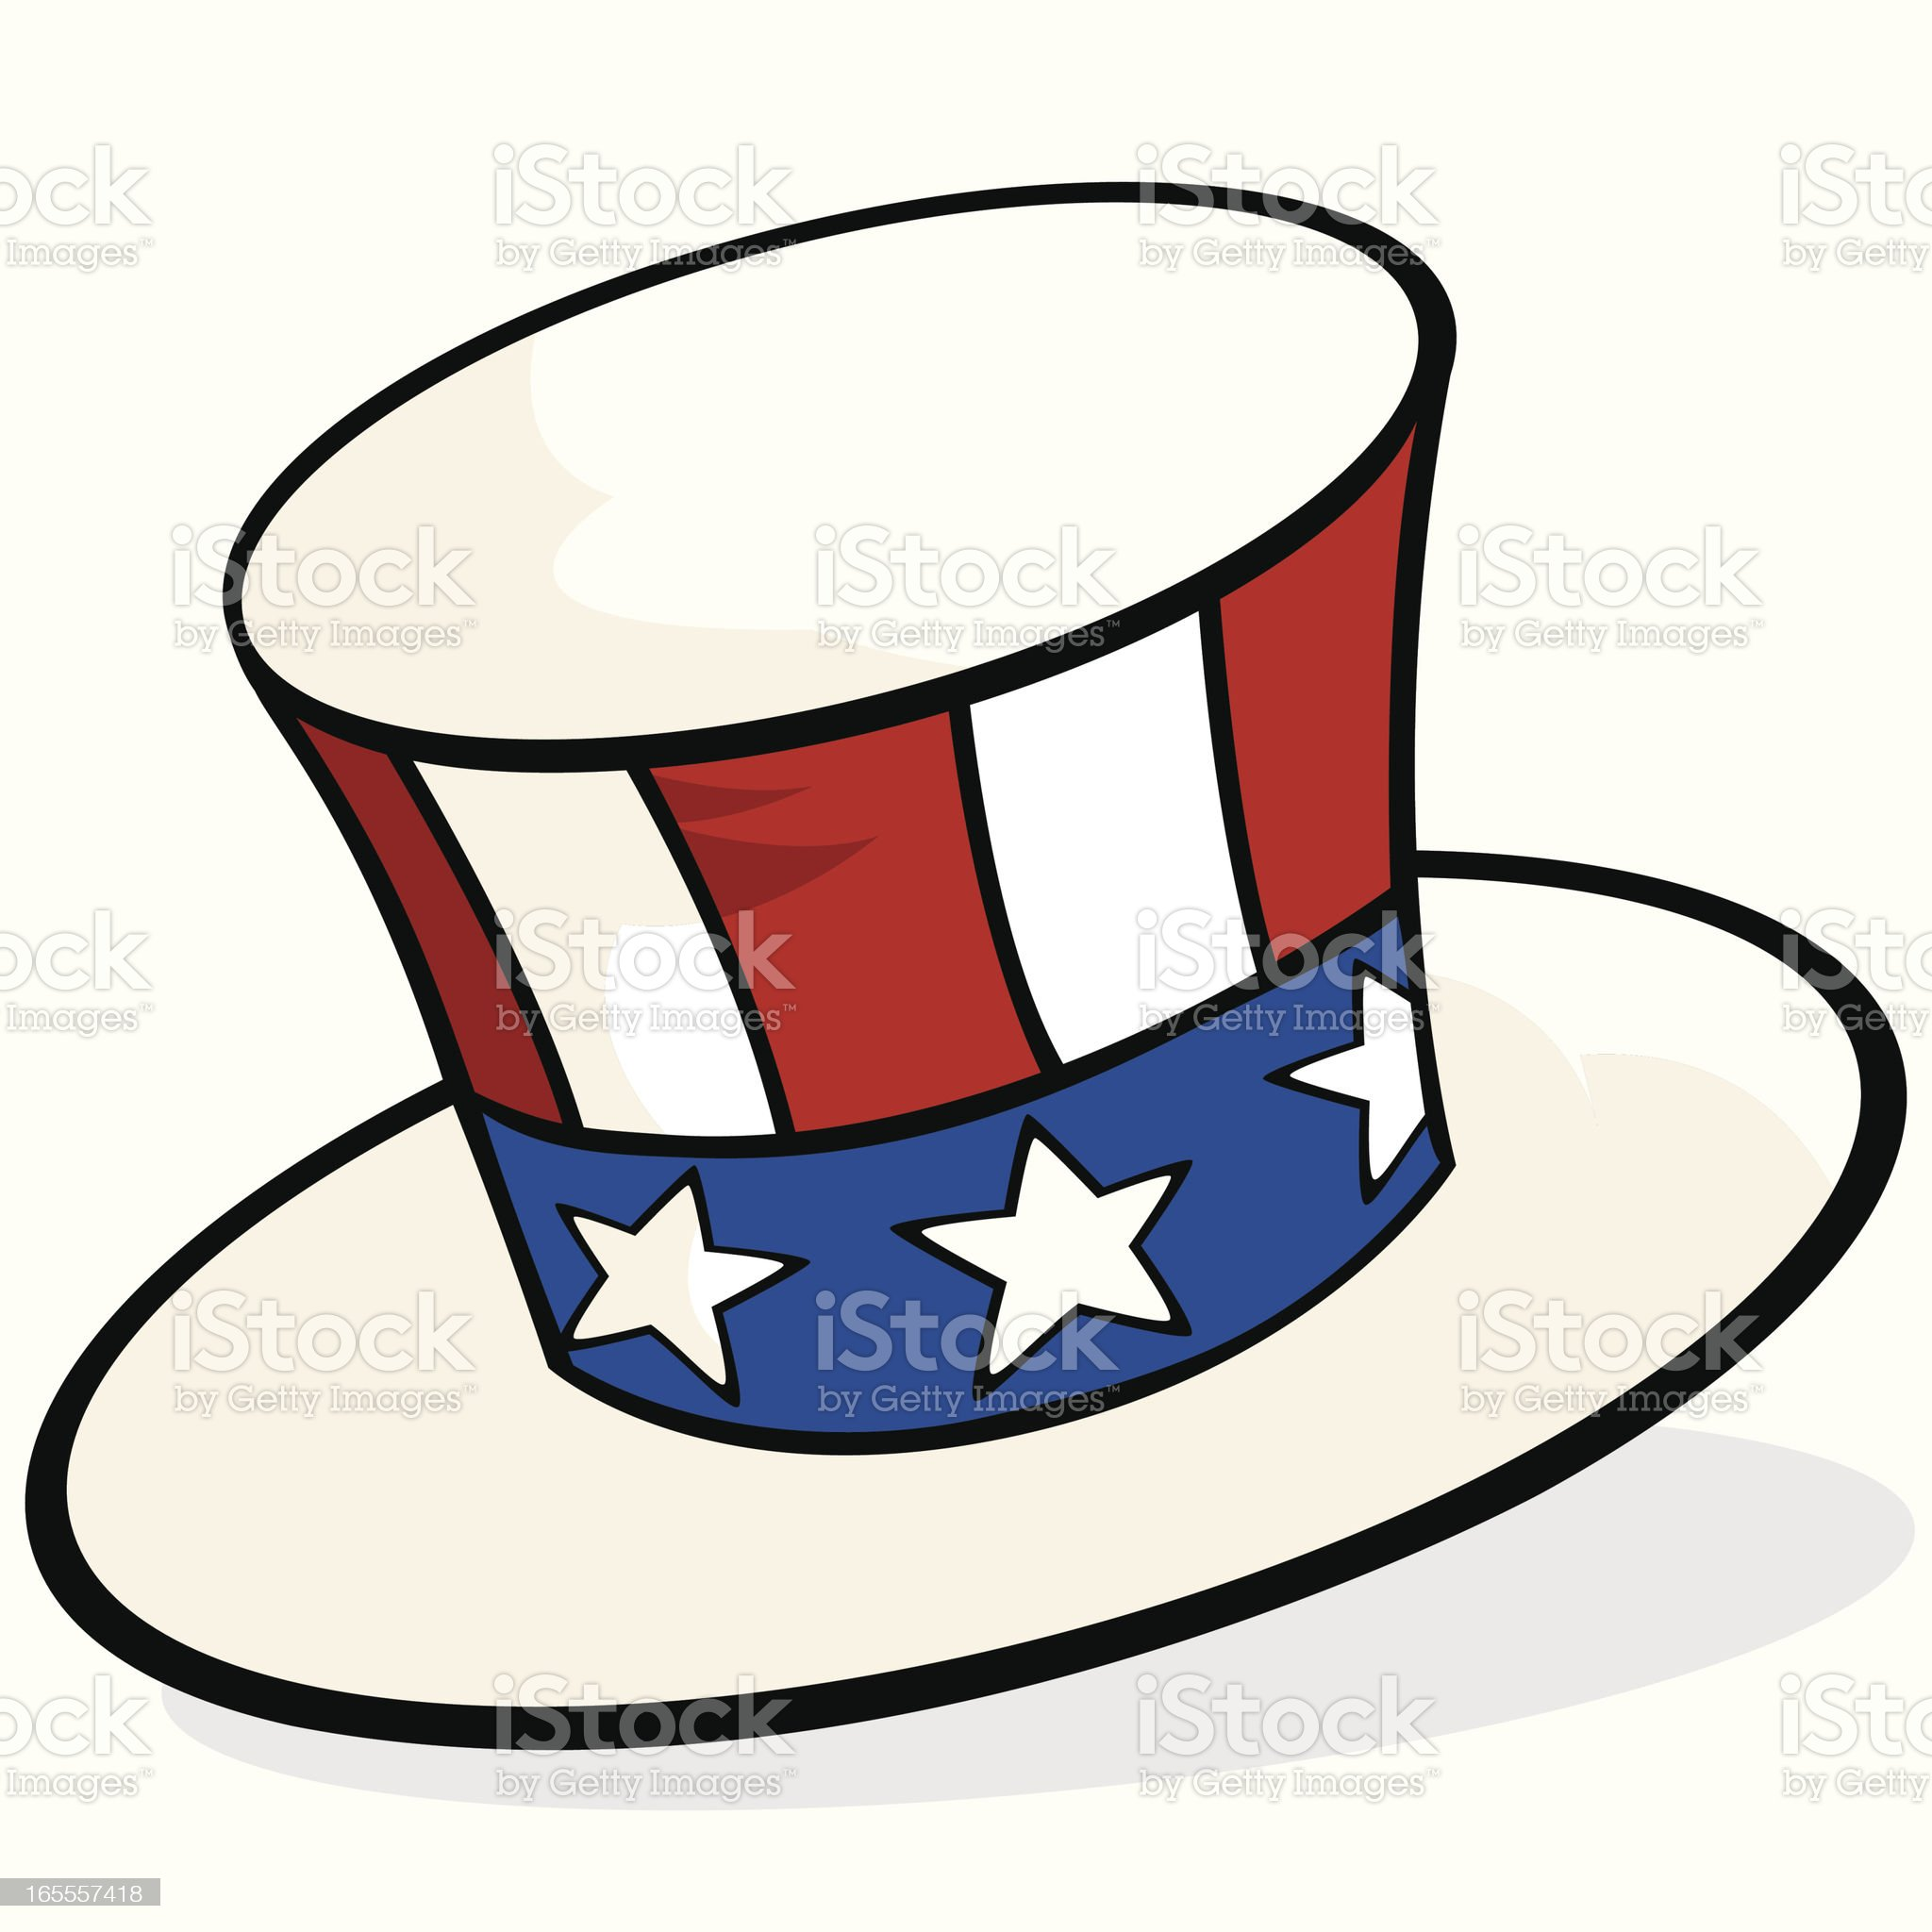 Uncle Sam's Top Hat royalty-free stock vector art